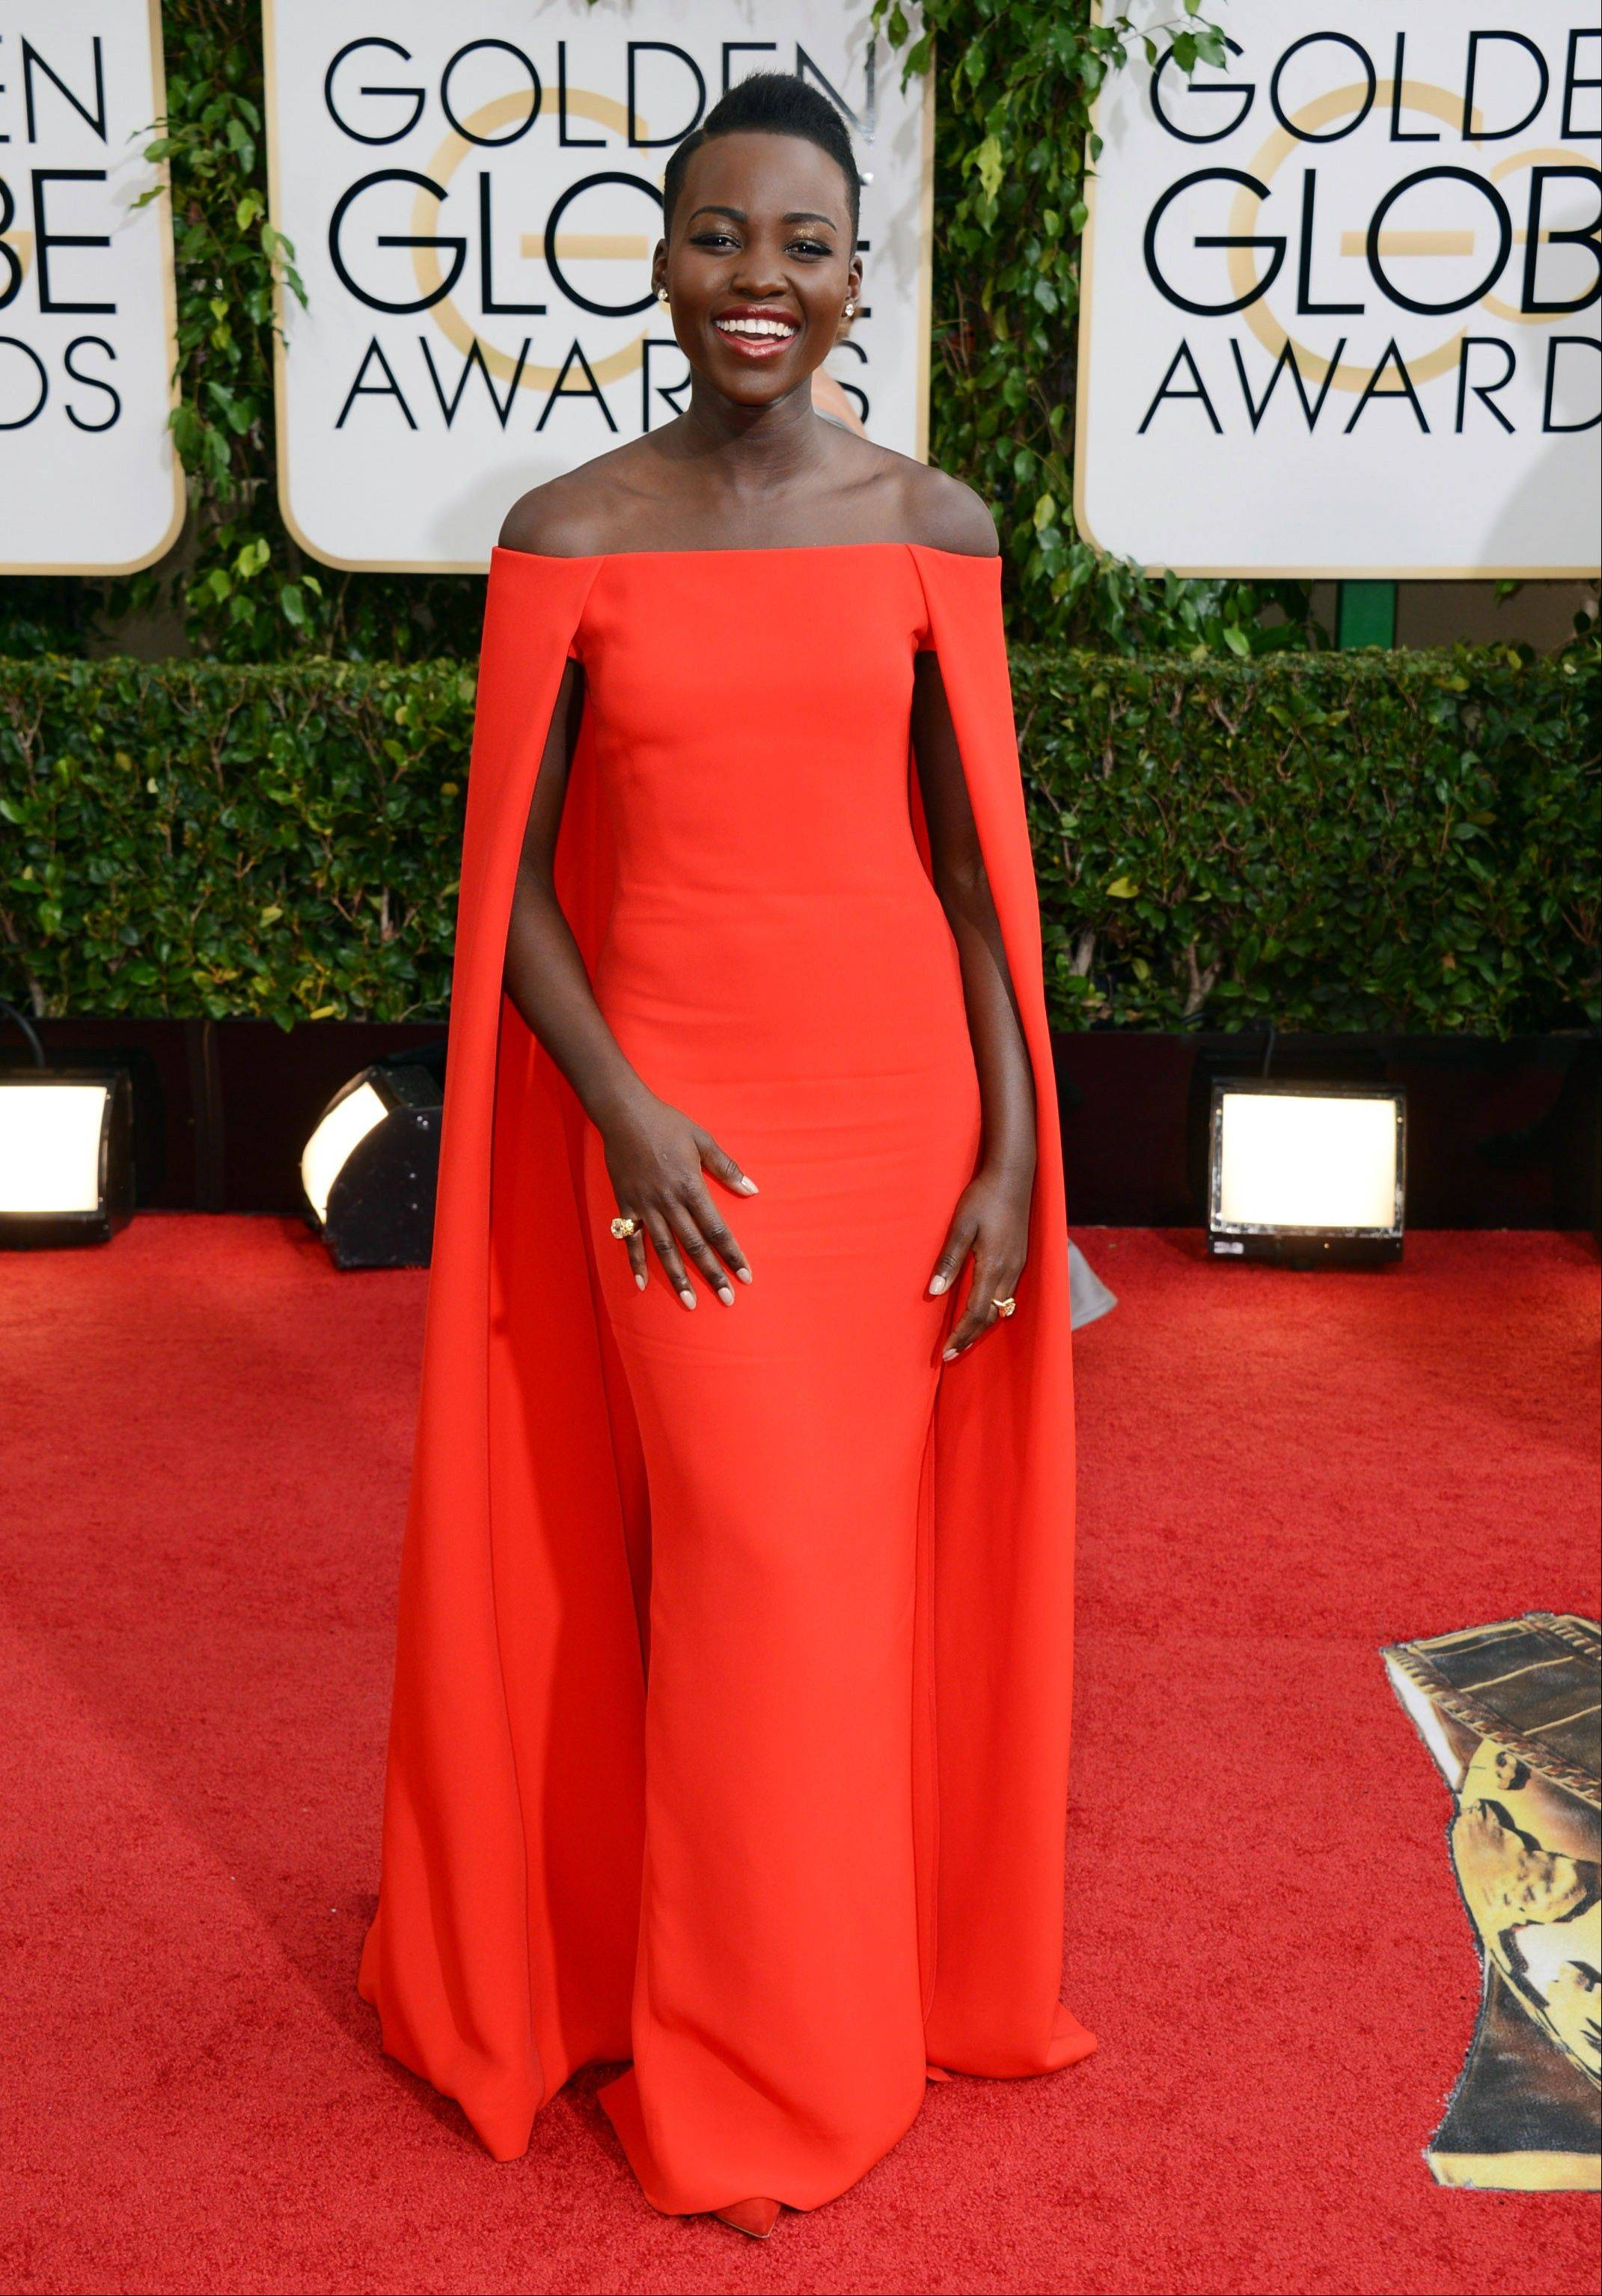 Five to talk about from Golden Globes red carpet